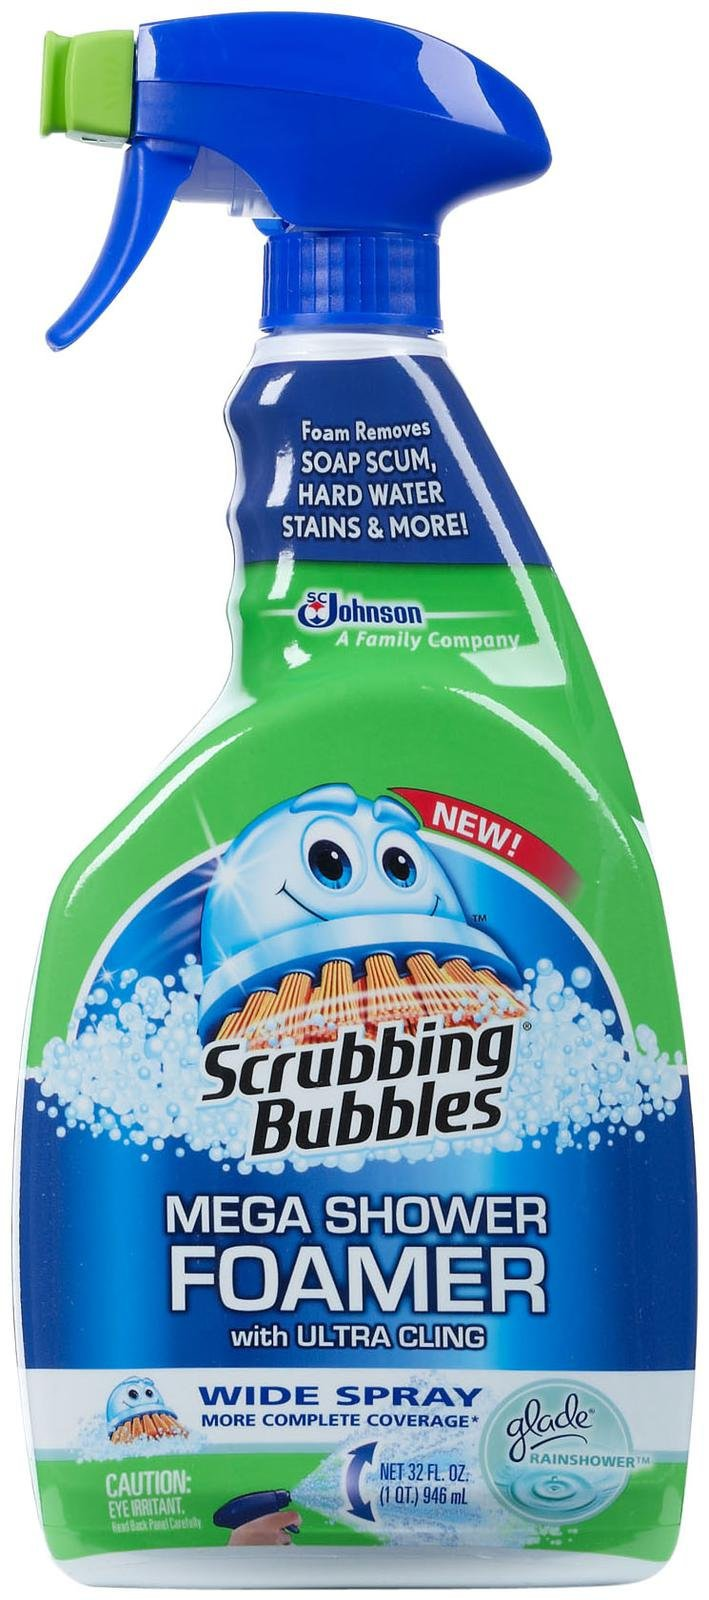 Scrubbing Bubbles Mega Shower Foamer Image Gallery